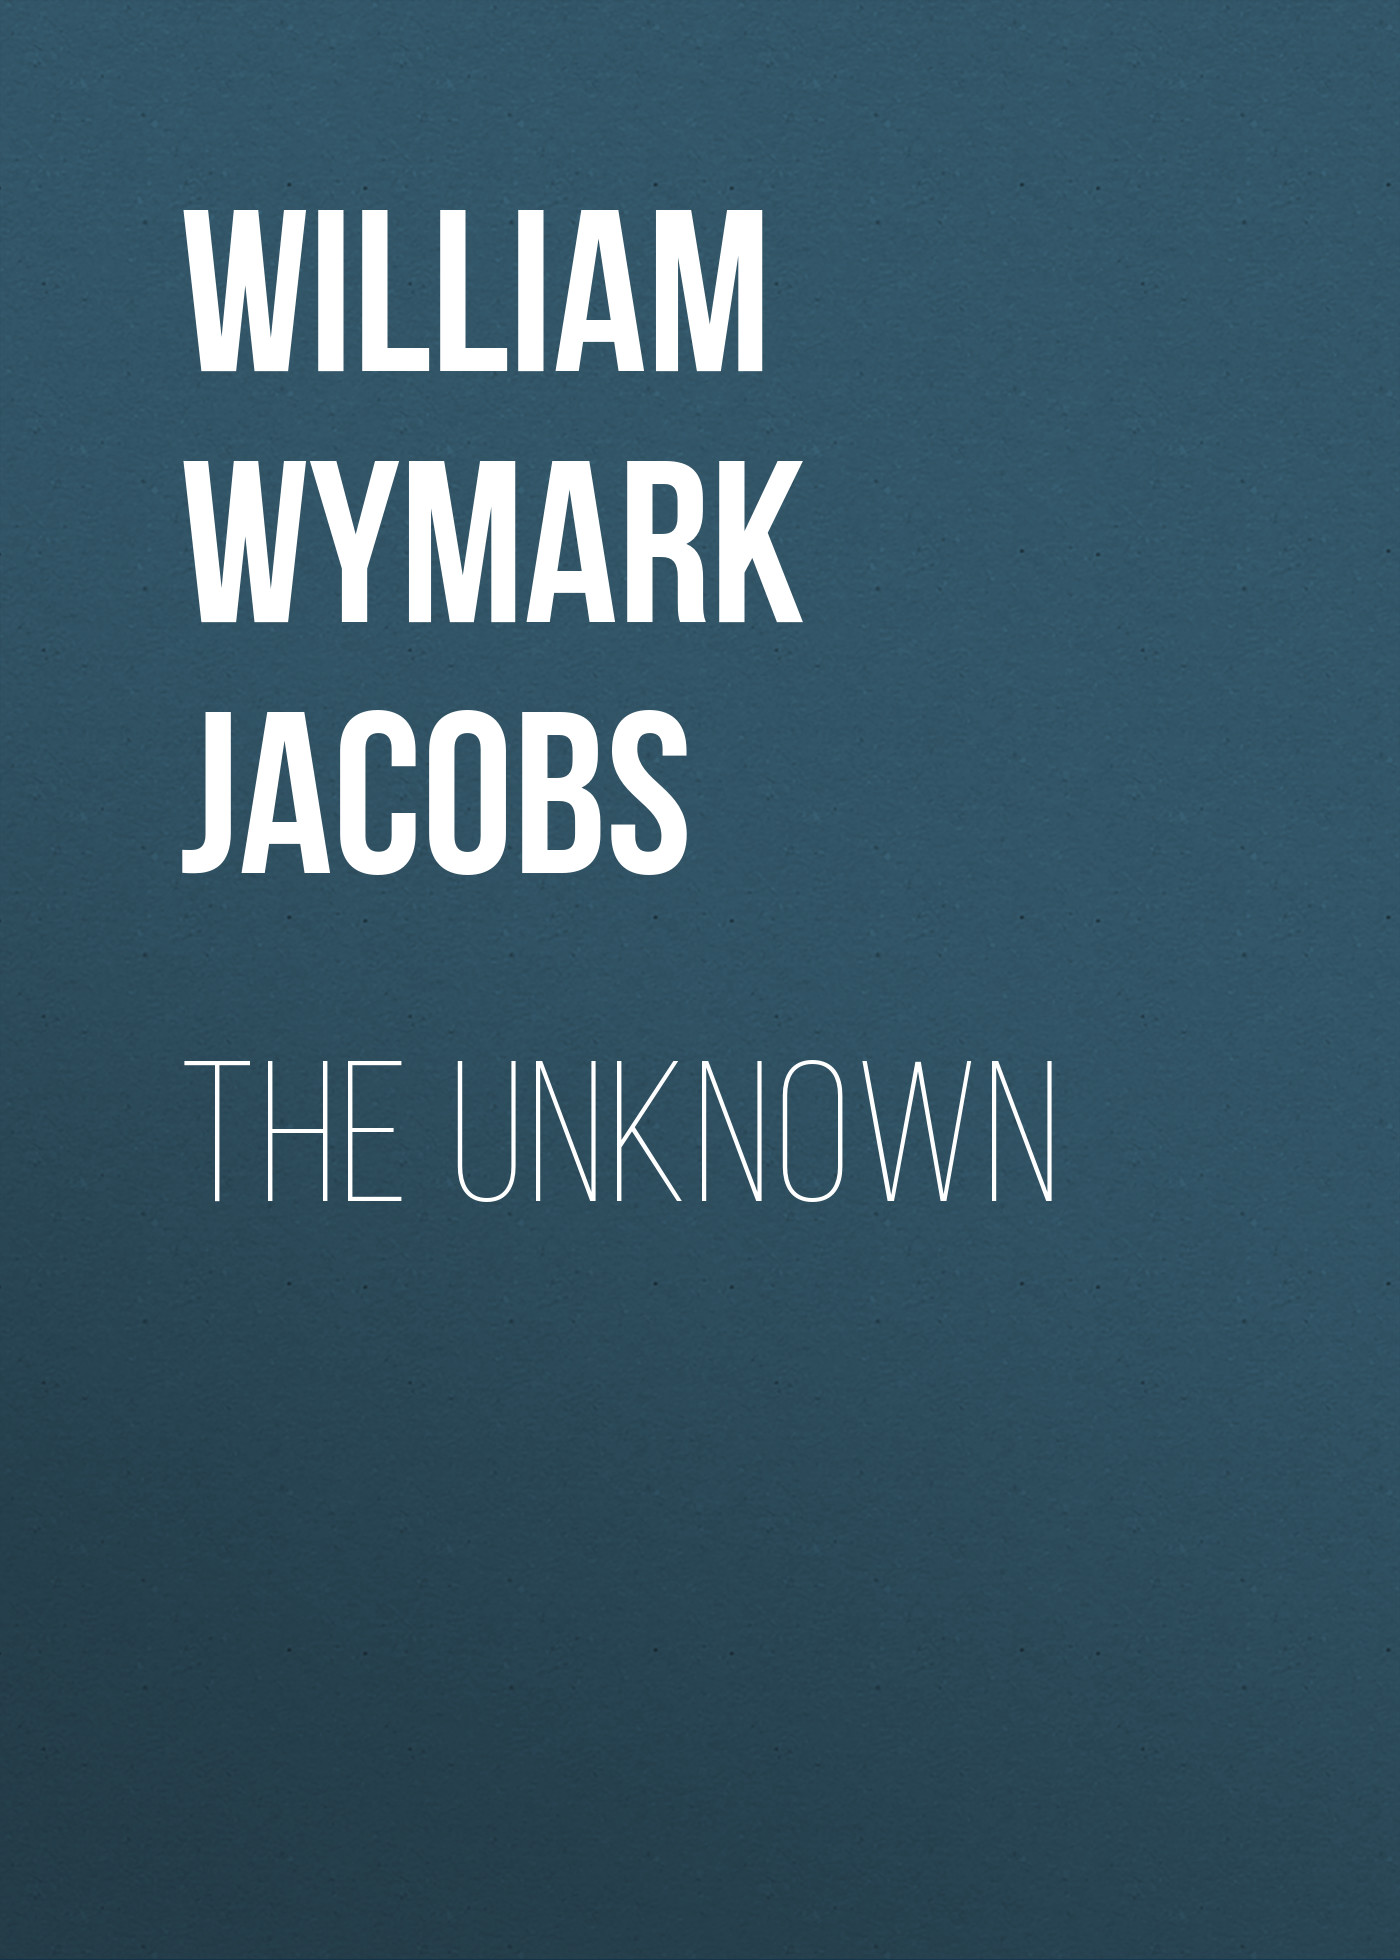 лучшая цена William Wymark Jacobs The Unknown